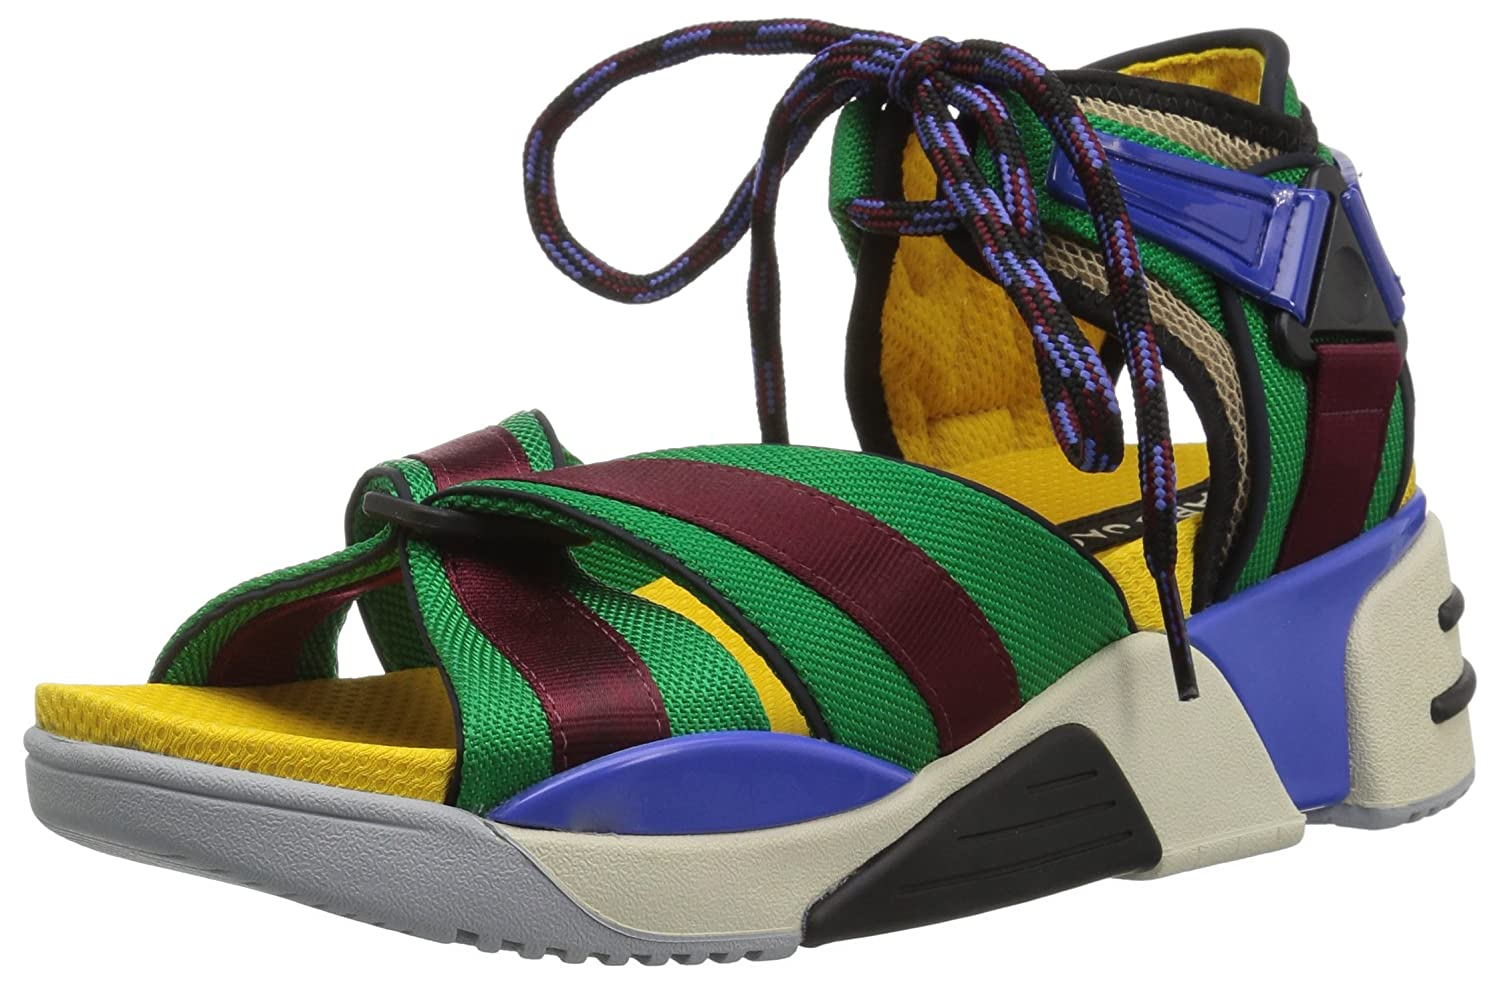 Marc Jacobs Women's Somewhere Sport Sandal B07864V2Z8 37 M EU (7 US)|Blue/Multi